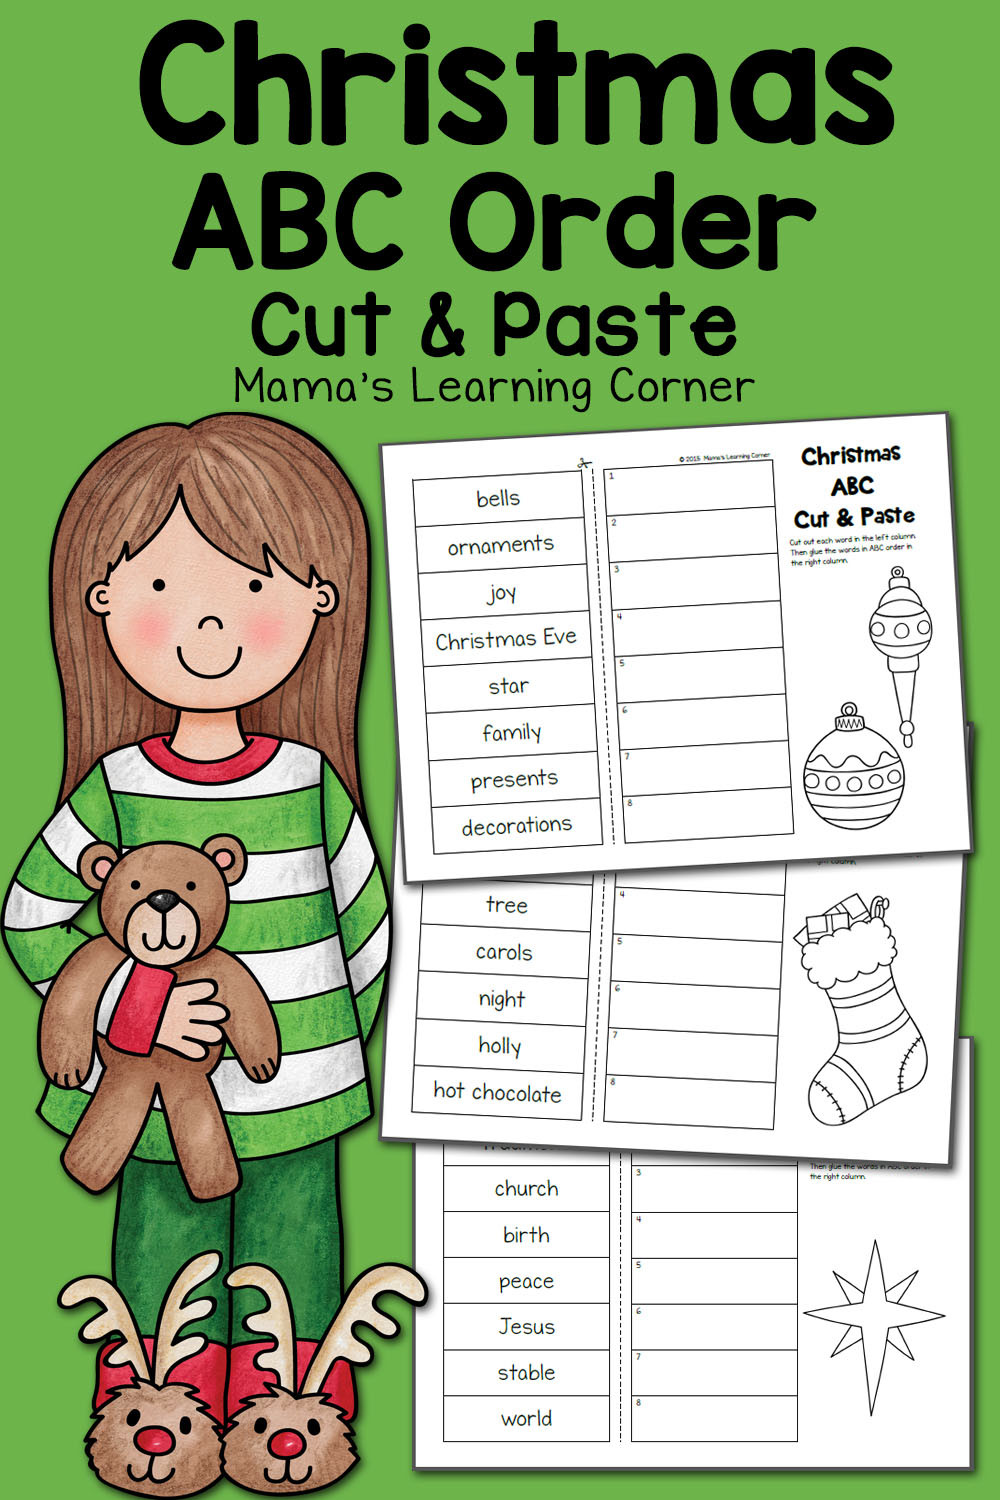 Free Printable Alphabetical order Worksheets Christmas Abc order Worksheets Cut and Paste Mamas